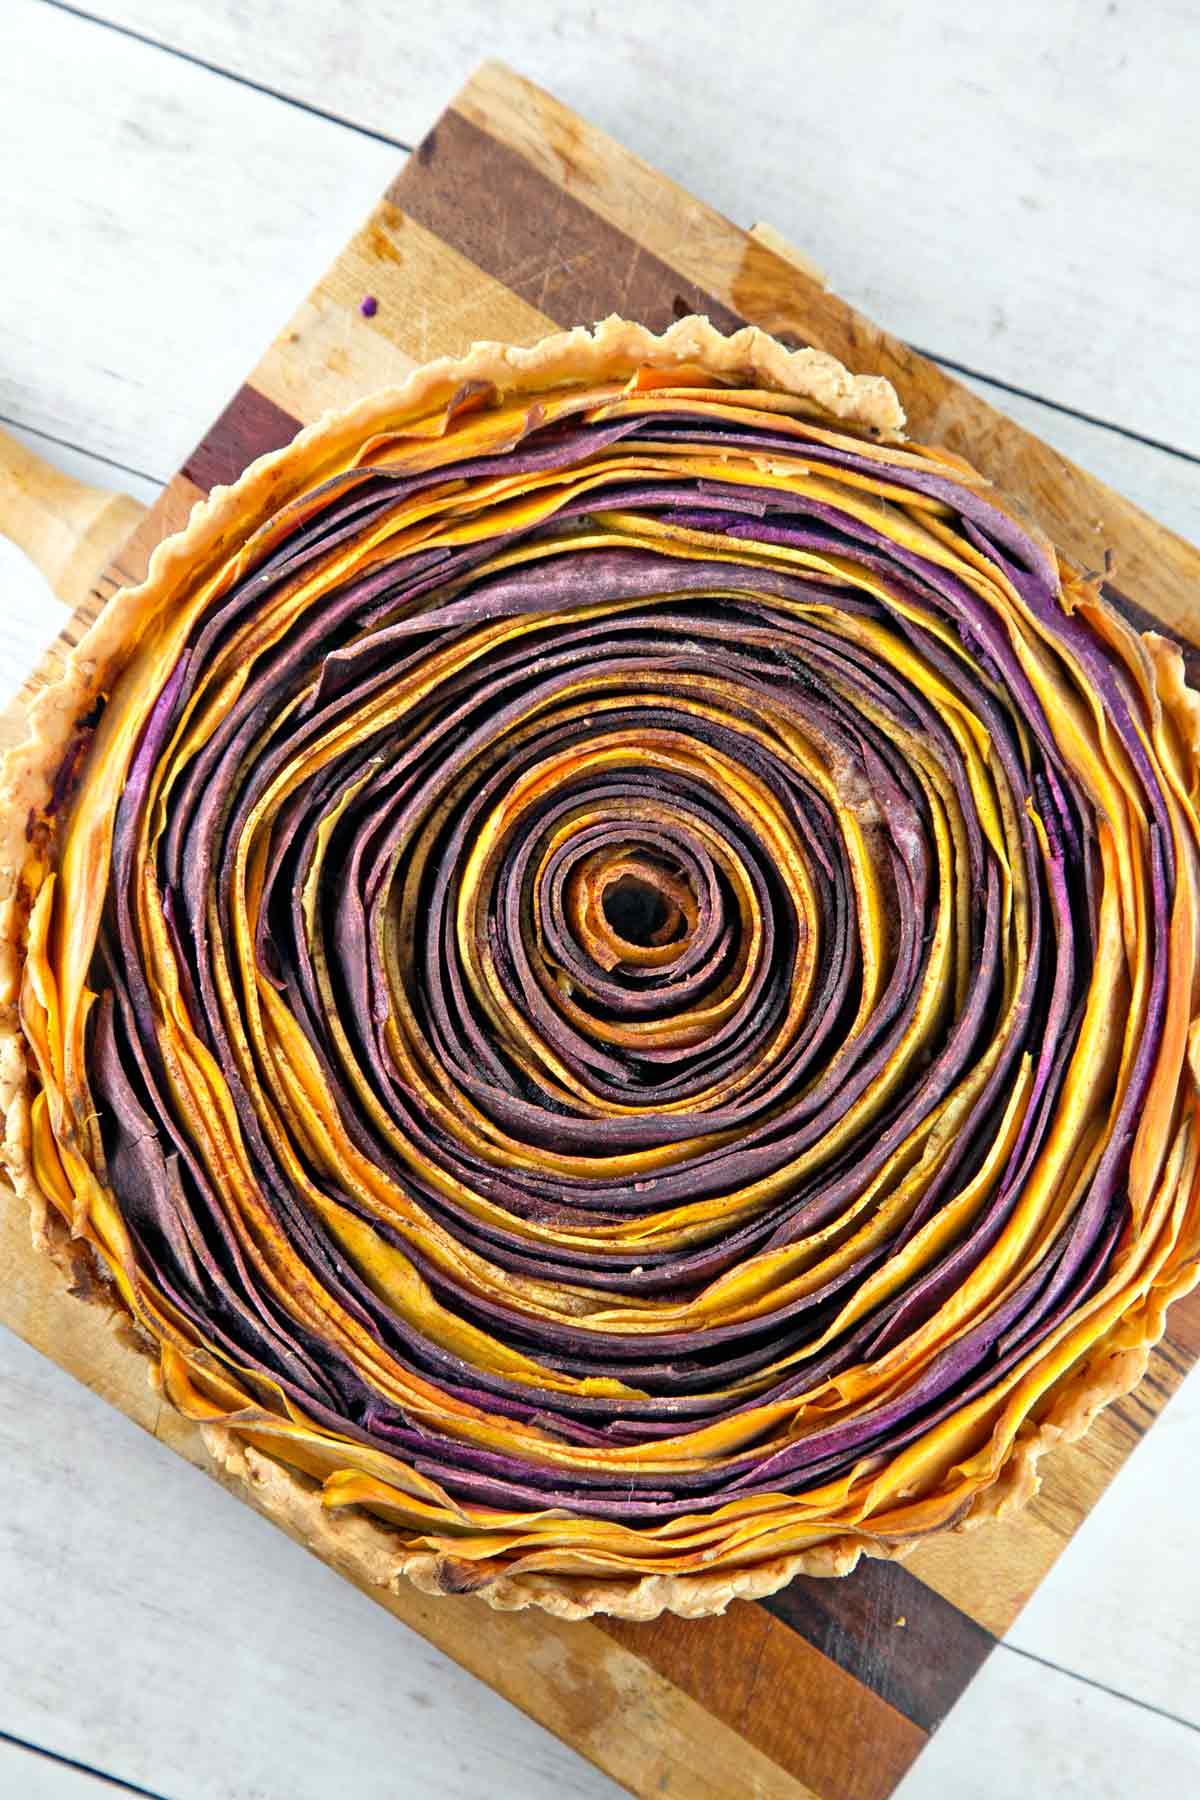 baked sweet potato tart made in a spiral design with circles of orange and purple potatoes